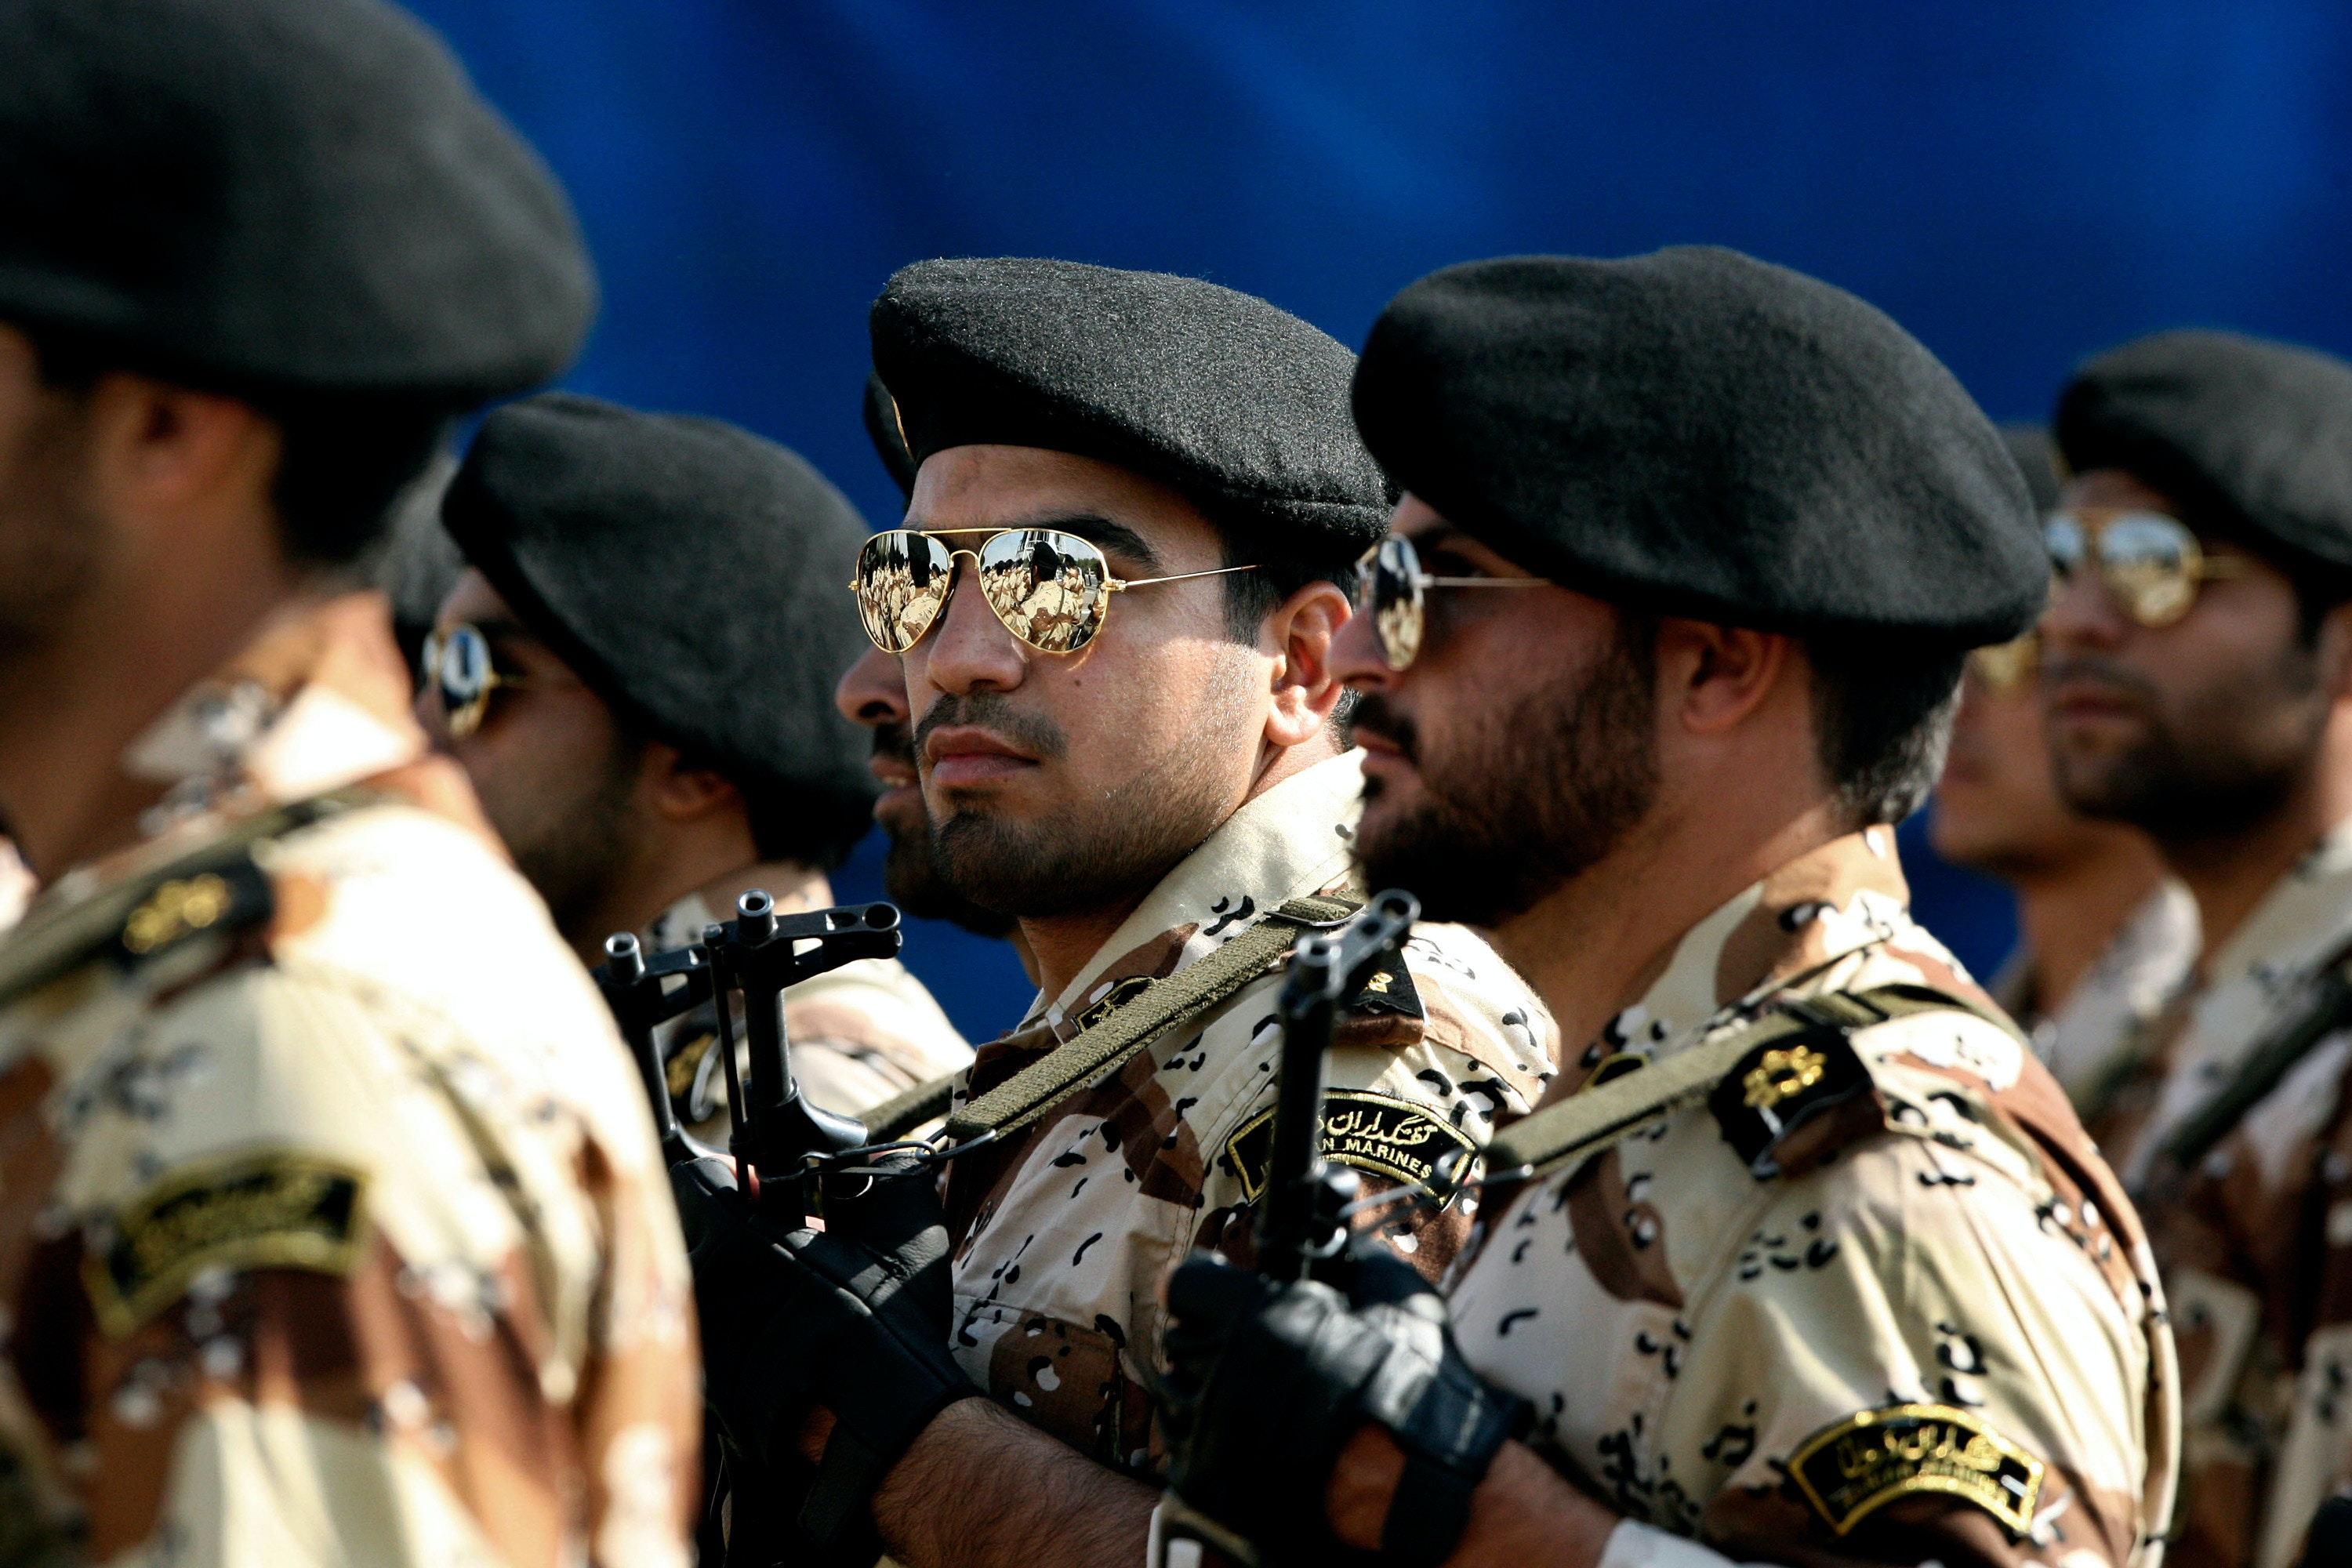 In this Sept. 22, 2011 photo, members of Iran's Revolutionary Guard march in front of the mausoleum of the late Iranian revolutionary founder Ayatollah Khomeini, just outside Tehran, Iran, during armed an forces parade marking the 31st anniversary of the start of the Iraq-Iran war. Among the many mysteries inside Iran's ruling hierarchy, the Quds Force, which sits atop the vast military and industrial network of the Revolutionary Guard, has a special place in the shadows. (AP Photo/Vahid Salemi)